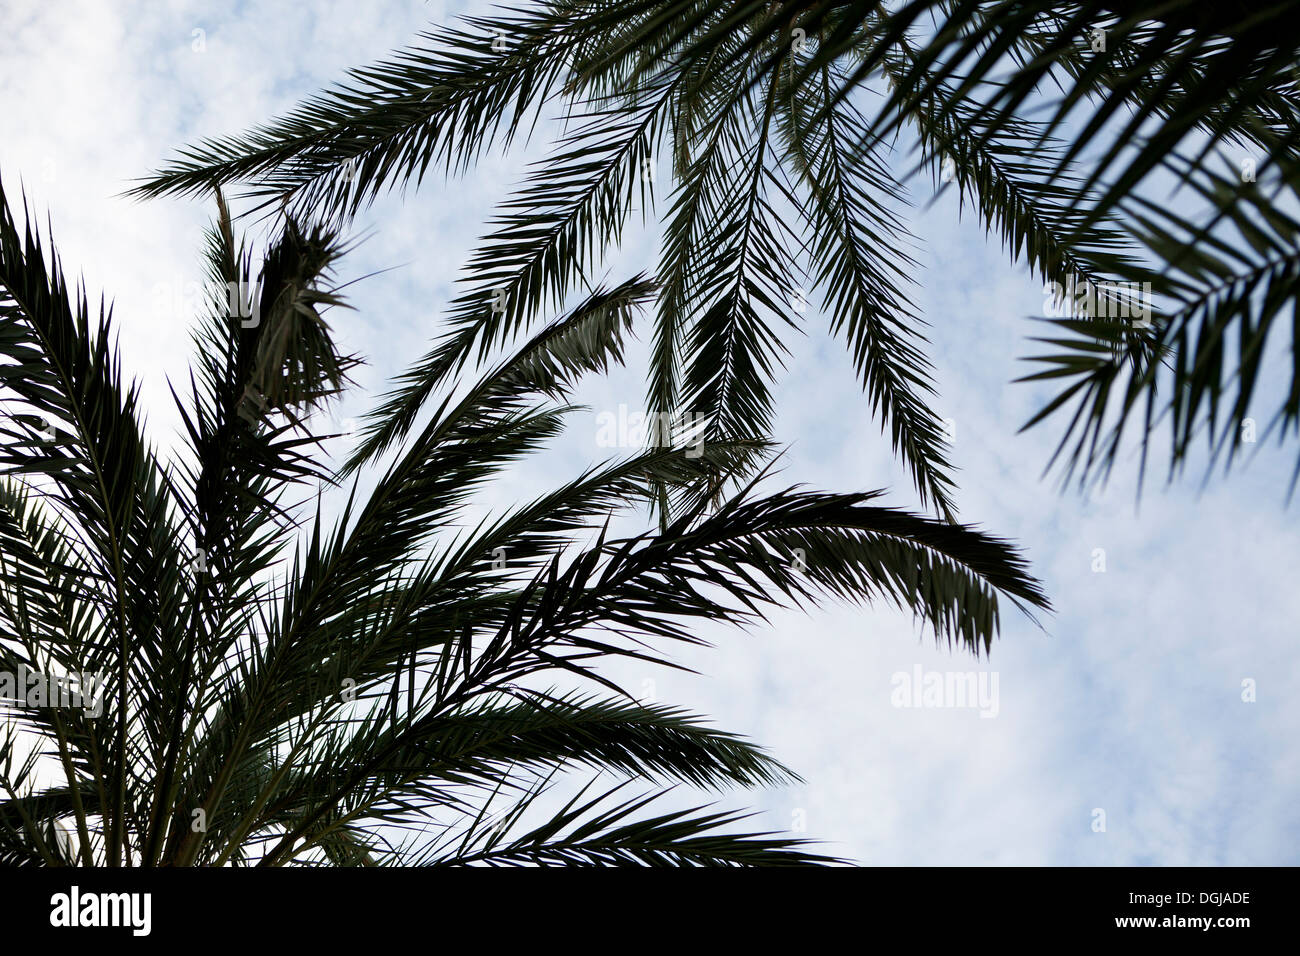 Palm Trees in Majorca - Stock Image